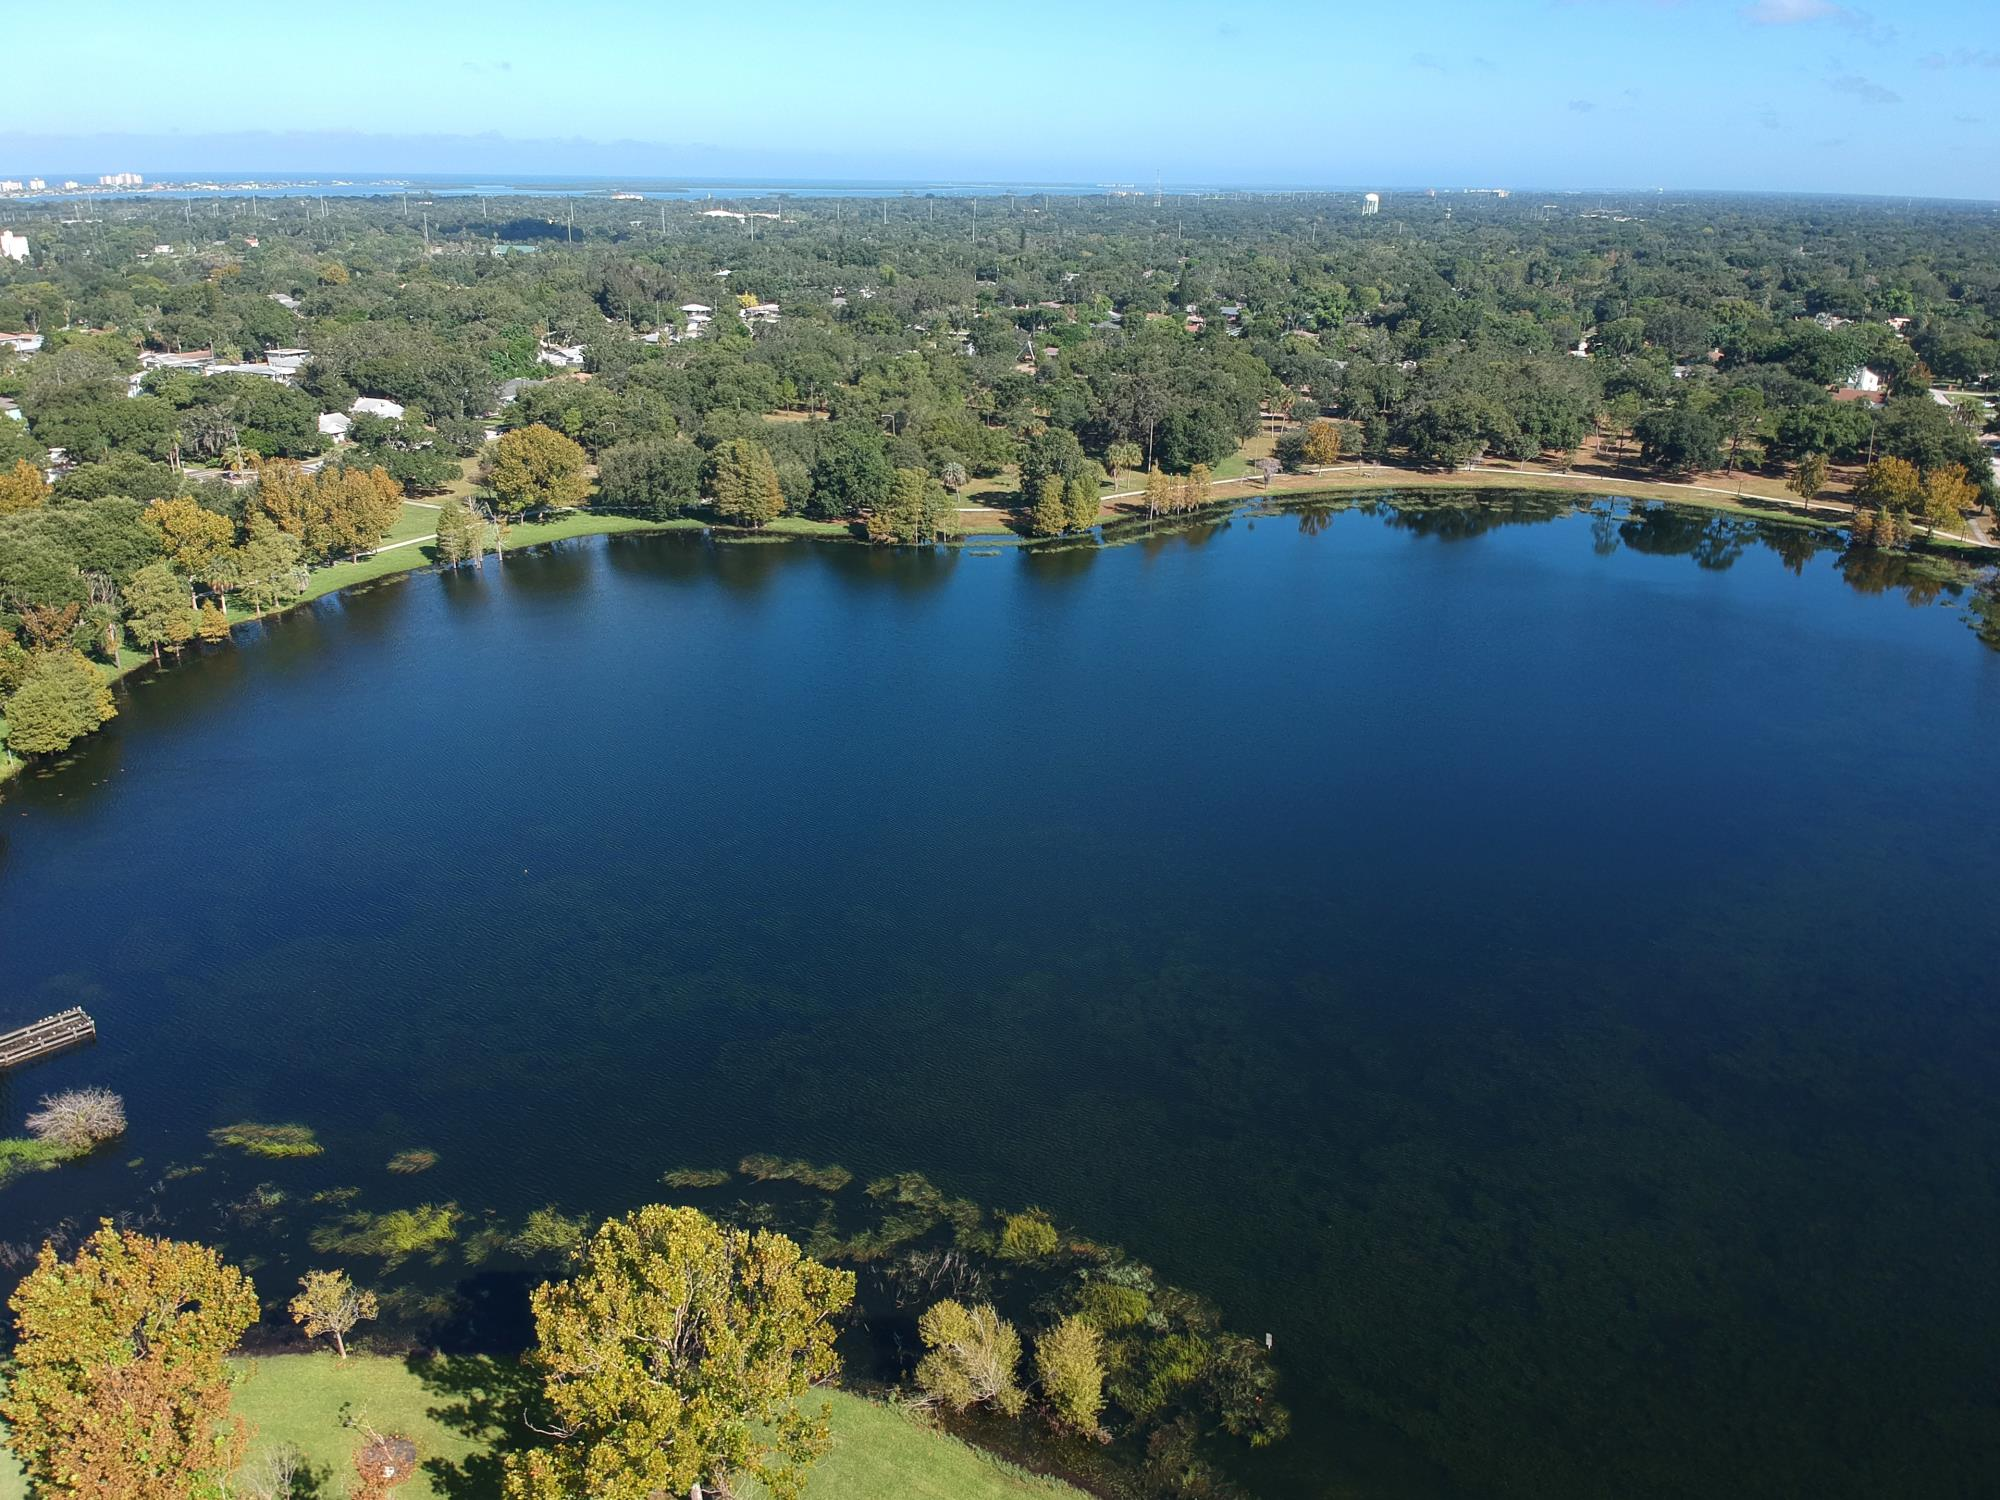 Aerial picture of Crest Lake Park and lake